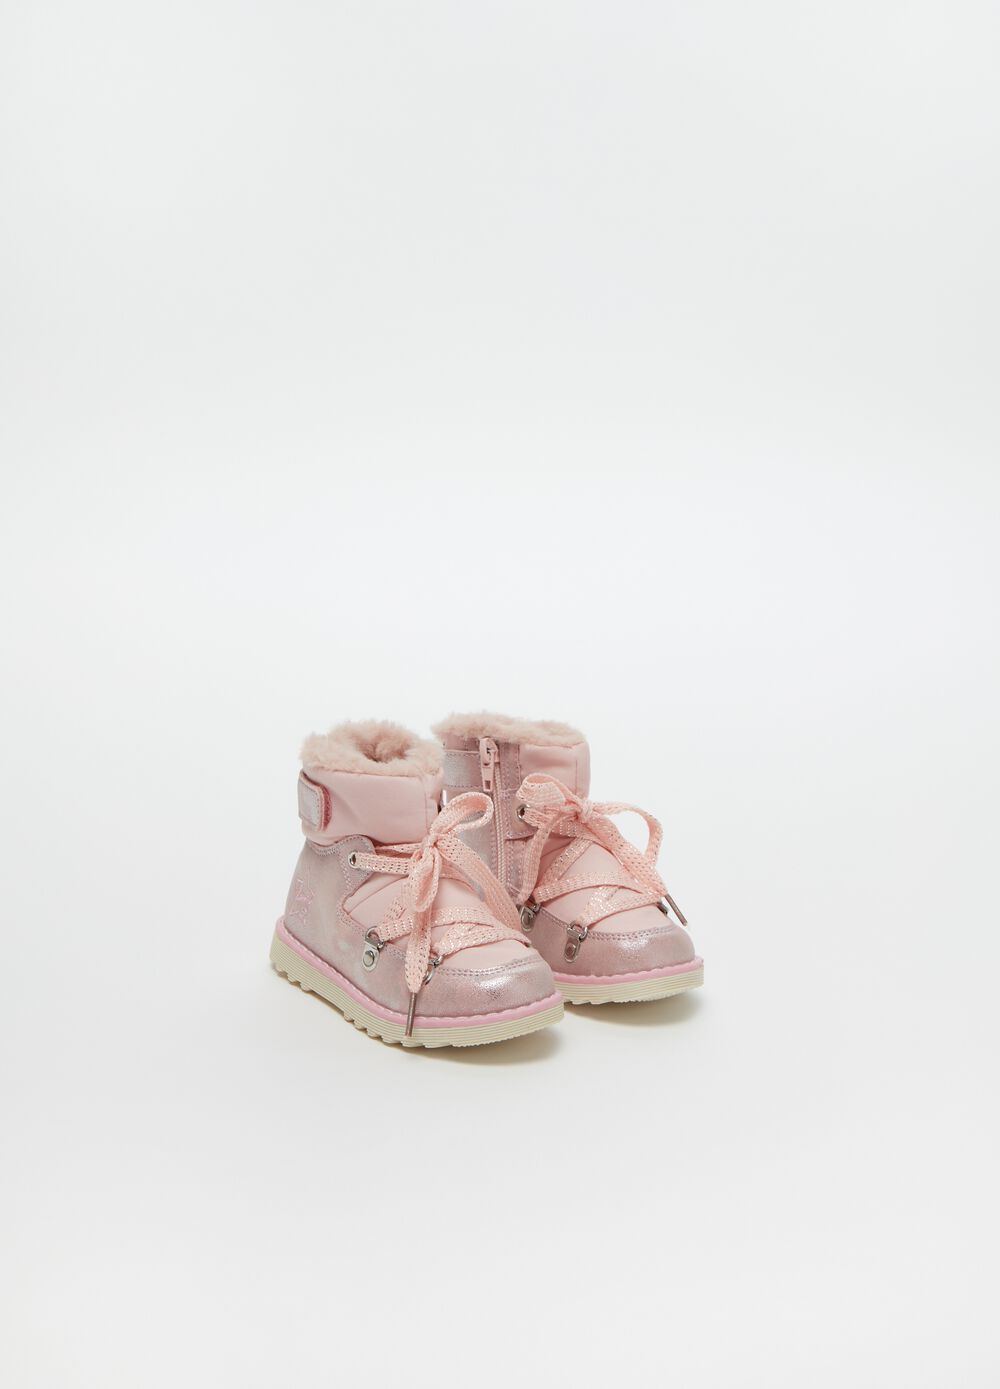 High-top glitter boots with laces